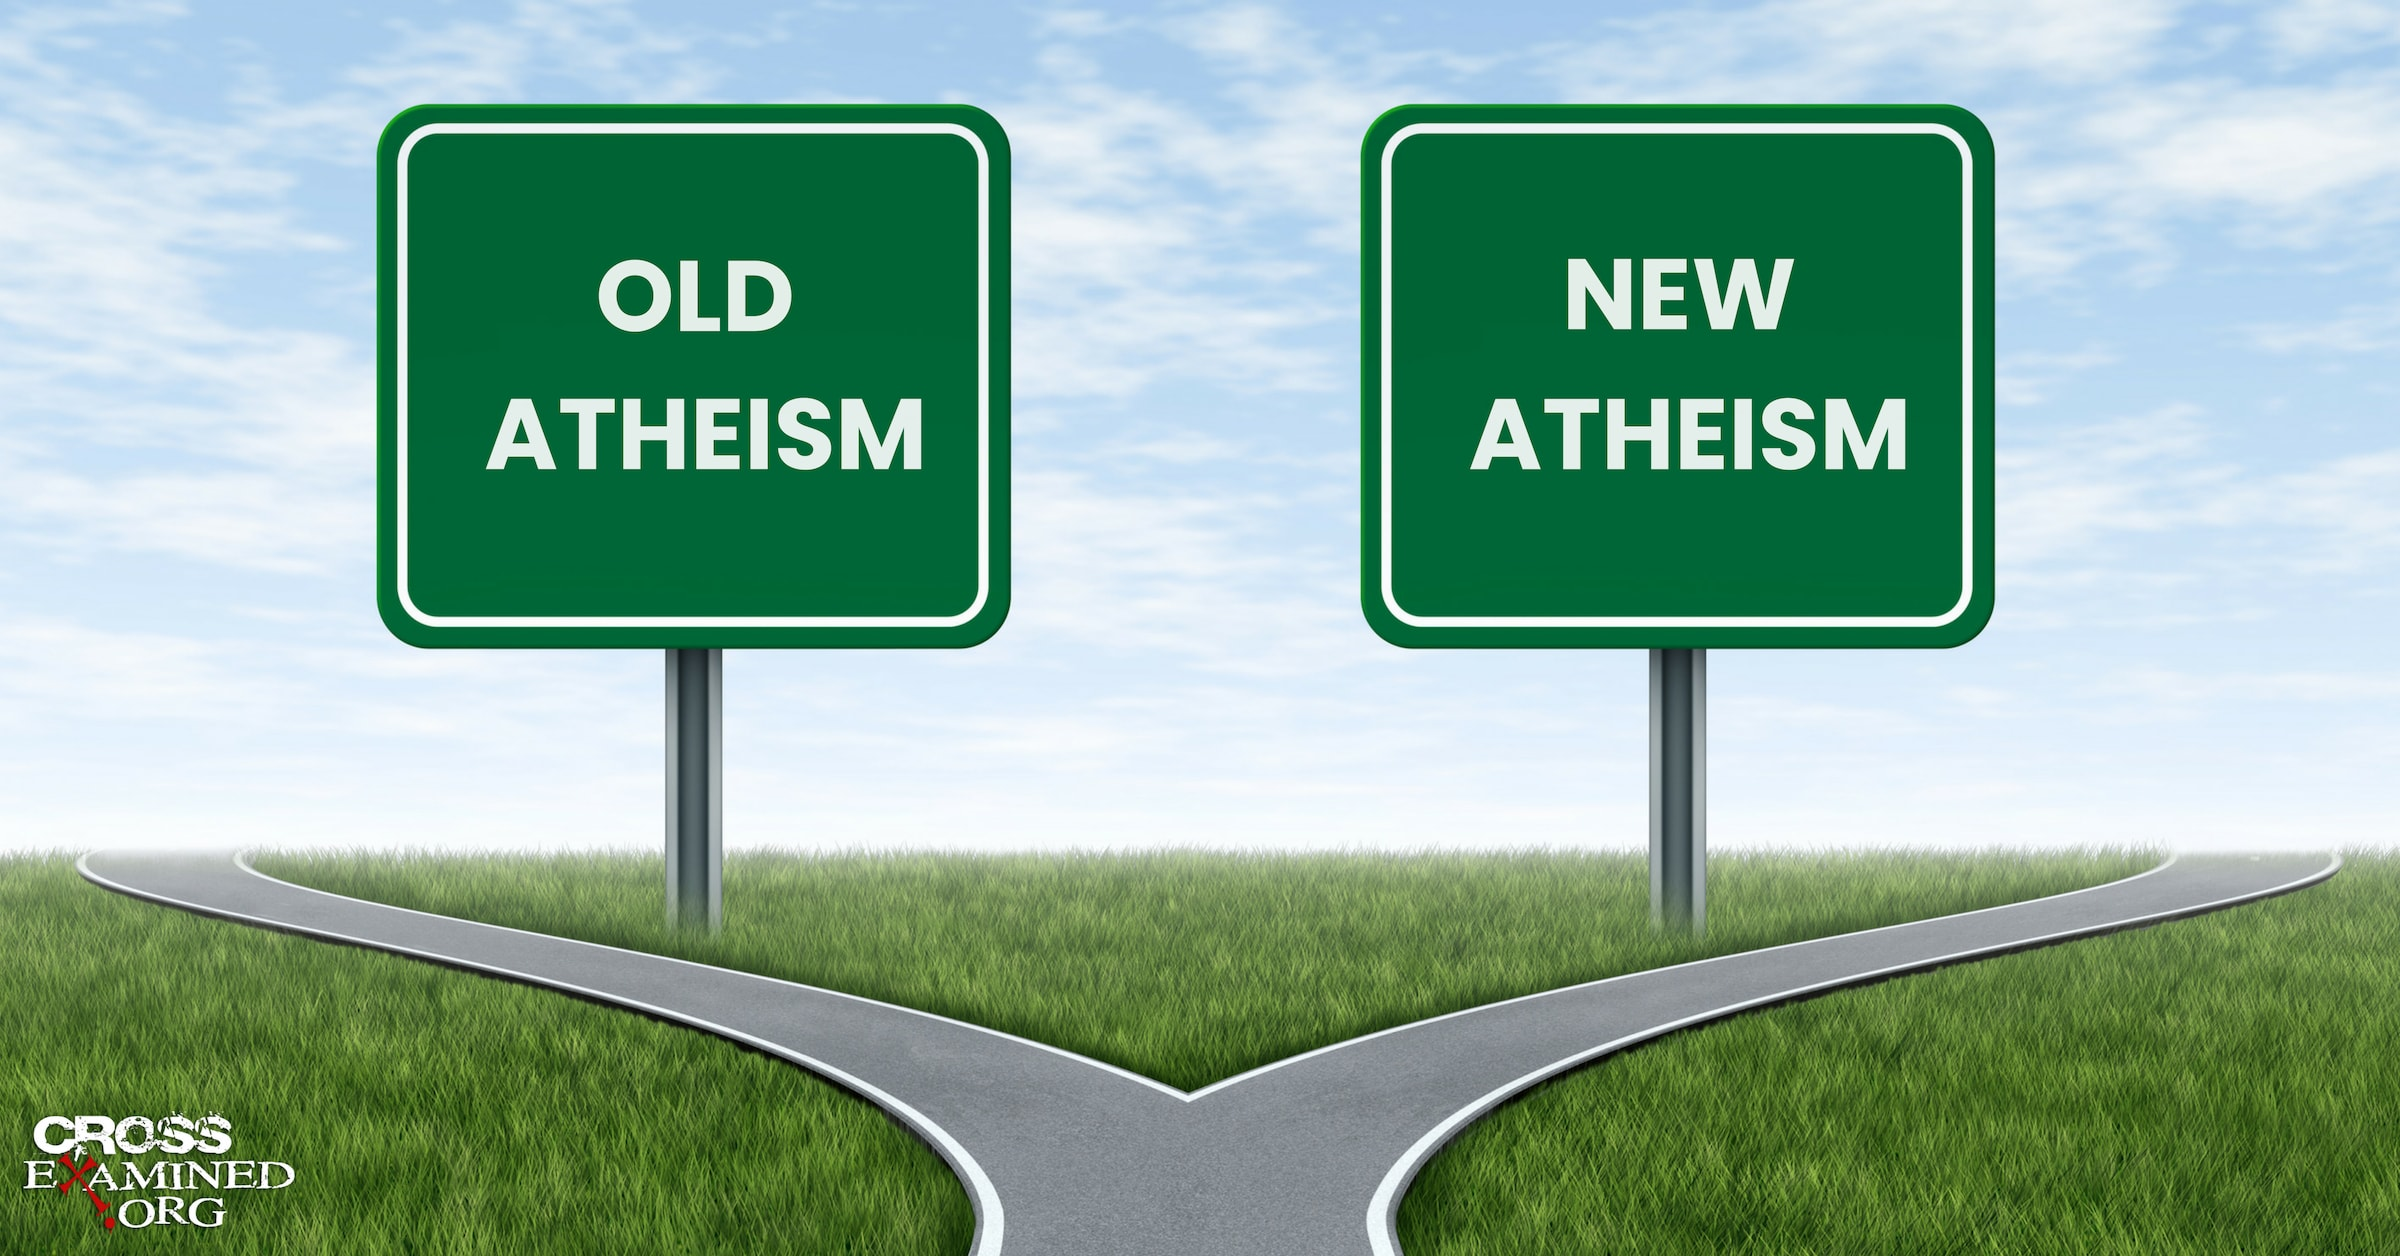 Atheism The Old Vs. the New